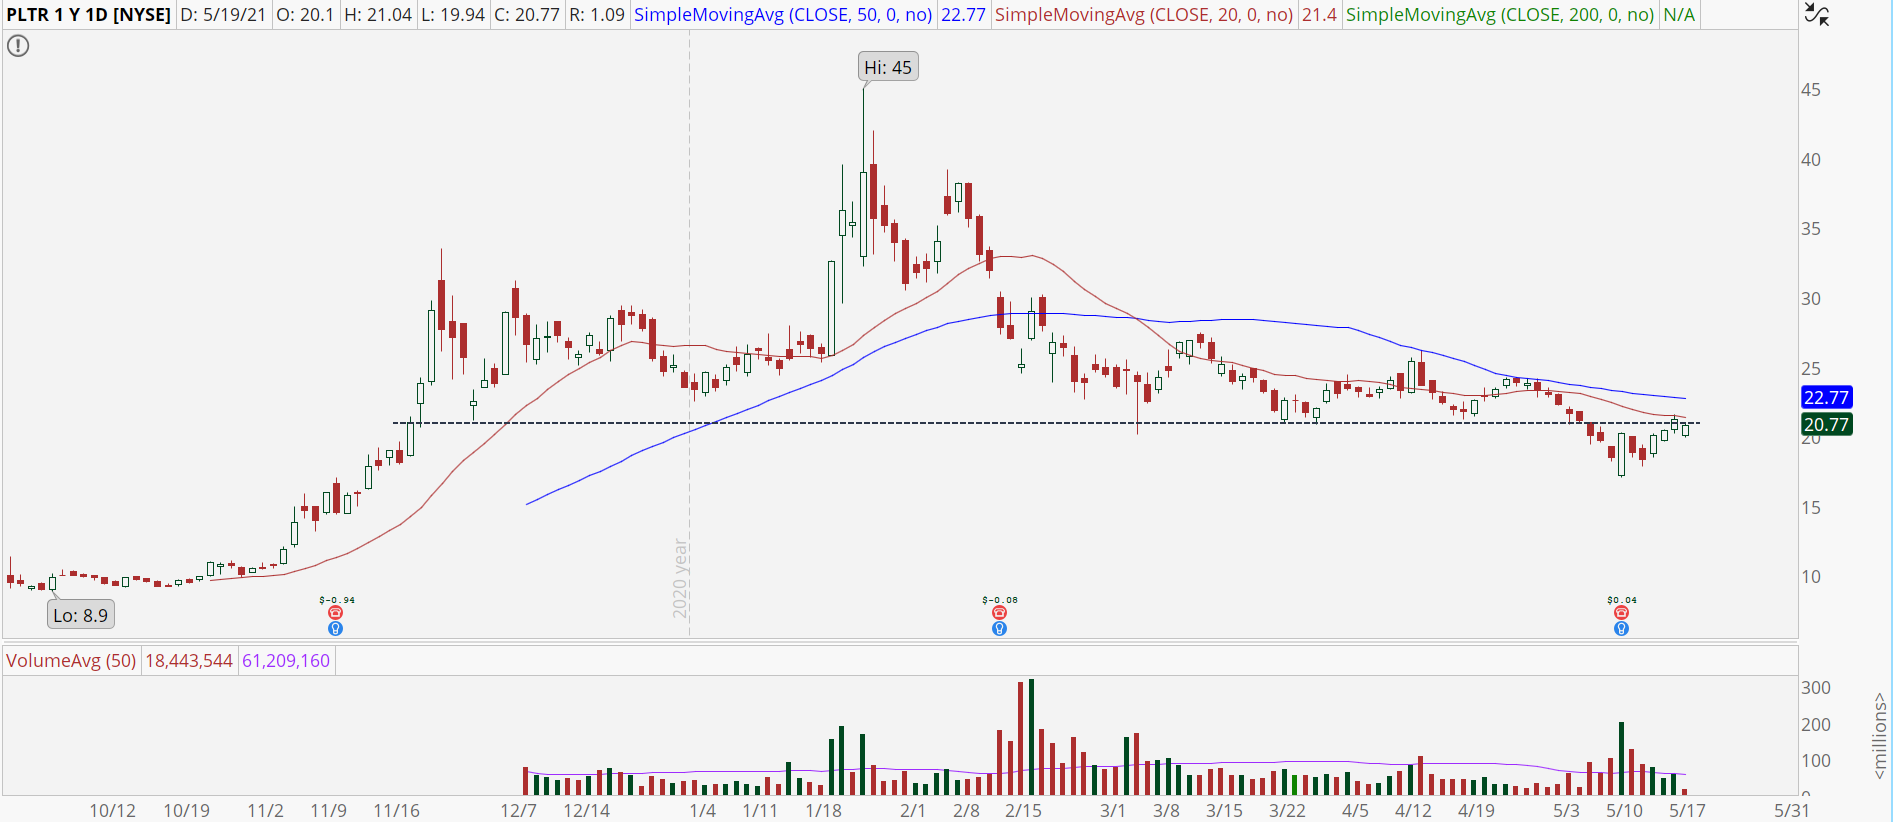 Palantir (PLTR) stock chart with potential fakeout